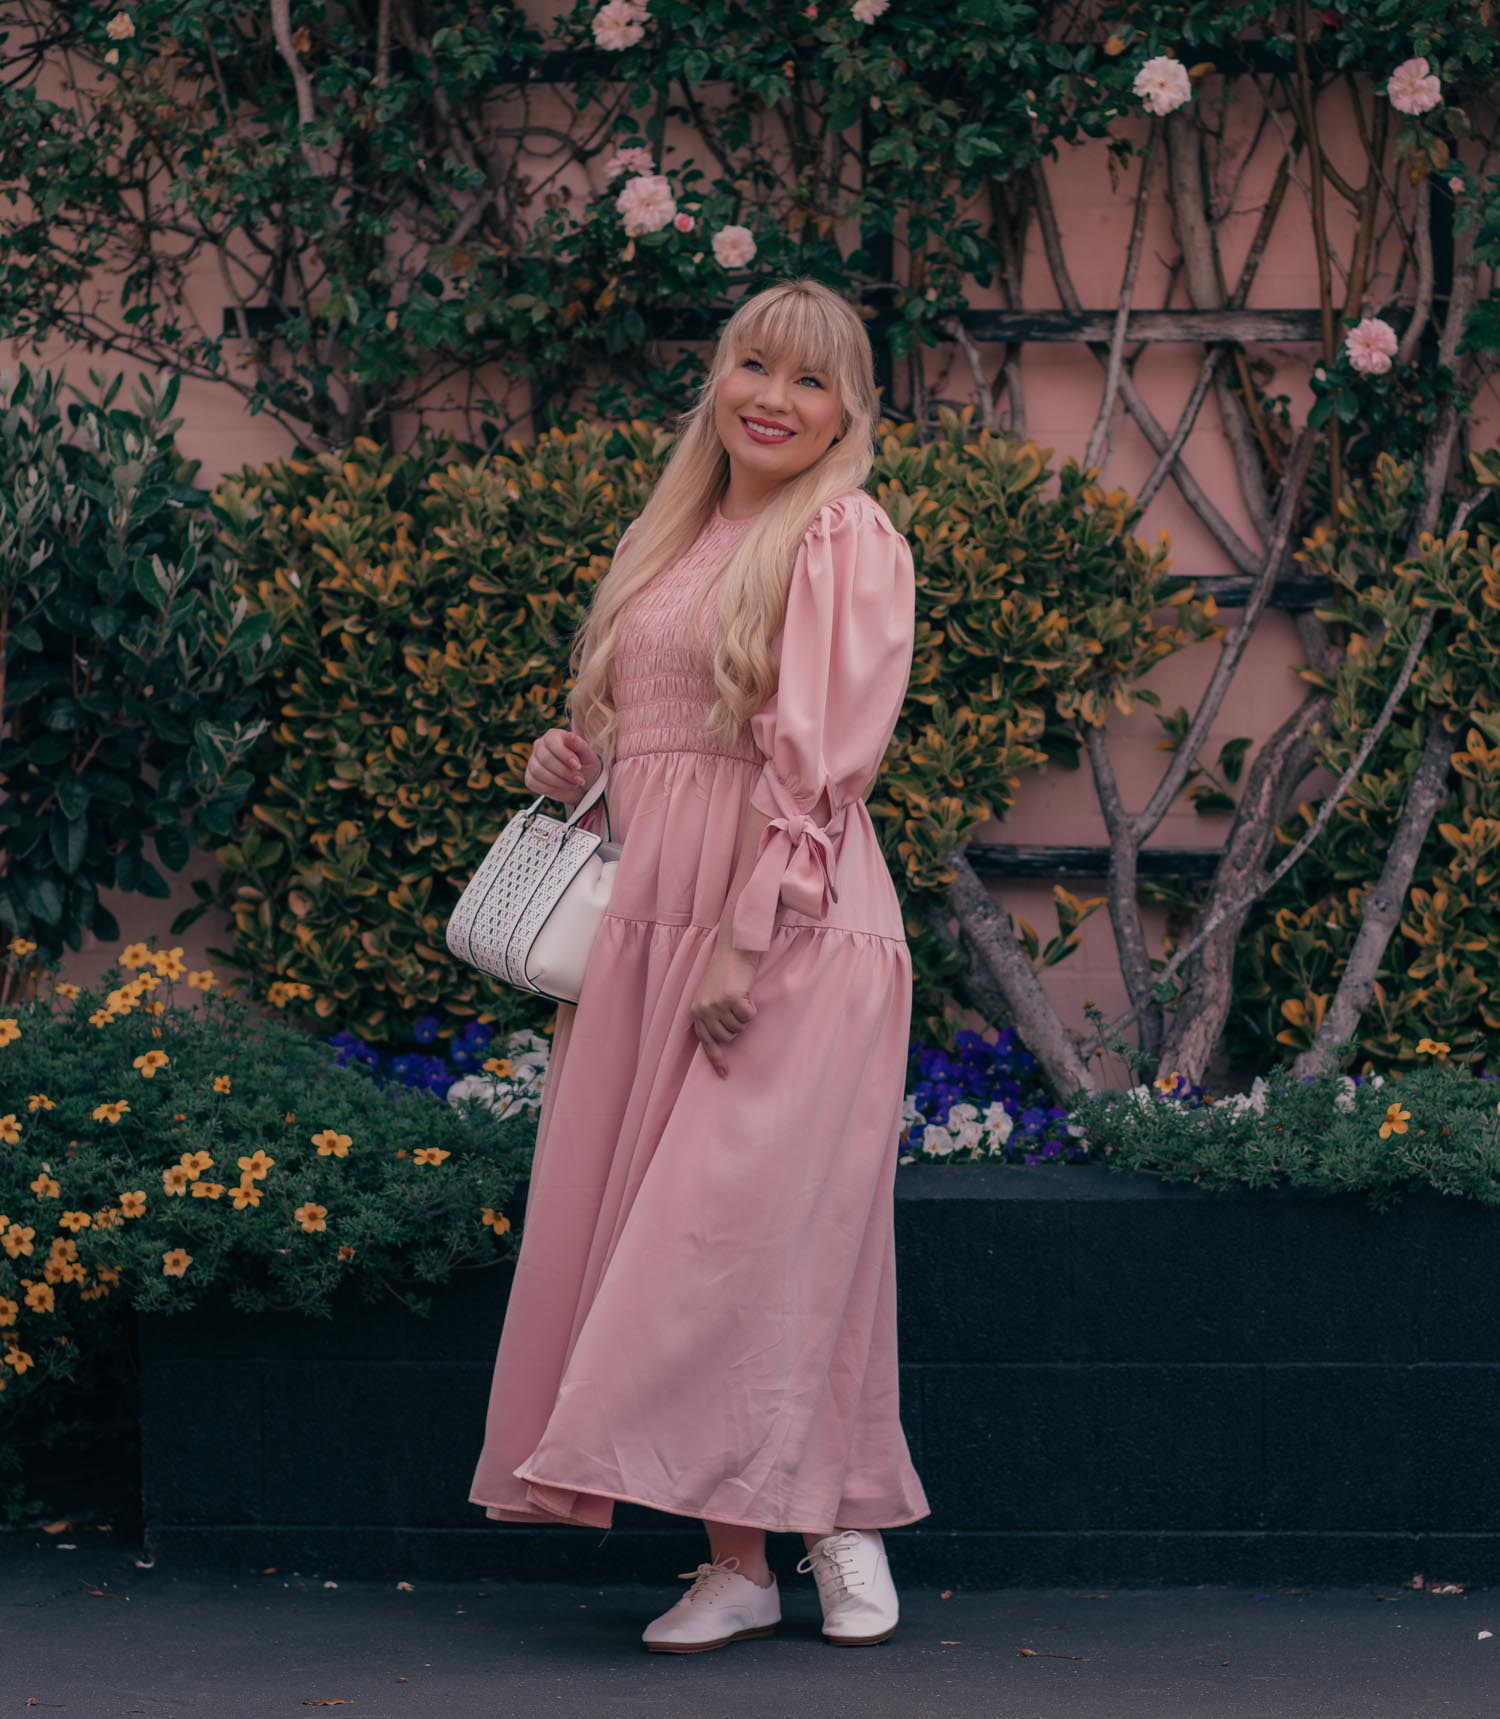 Feminine Fashion Blogger Elizabeth Hugen of Lizzie in Lace shares her September 2021 Month in Review along with a pink outfit including a Sister Jane Dress, Kate Spade Handbag and Anothersole Shoes